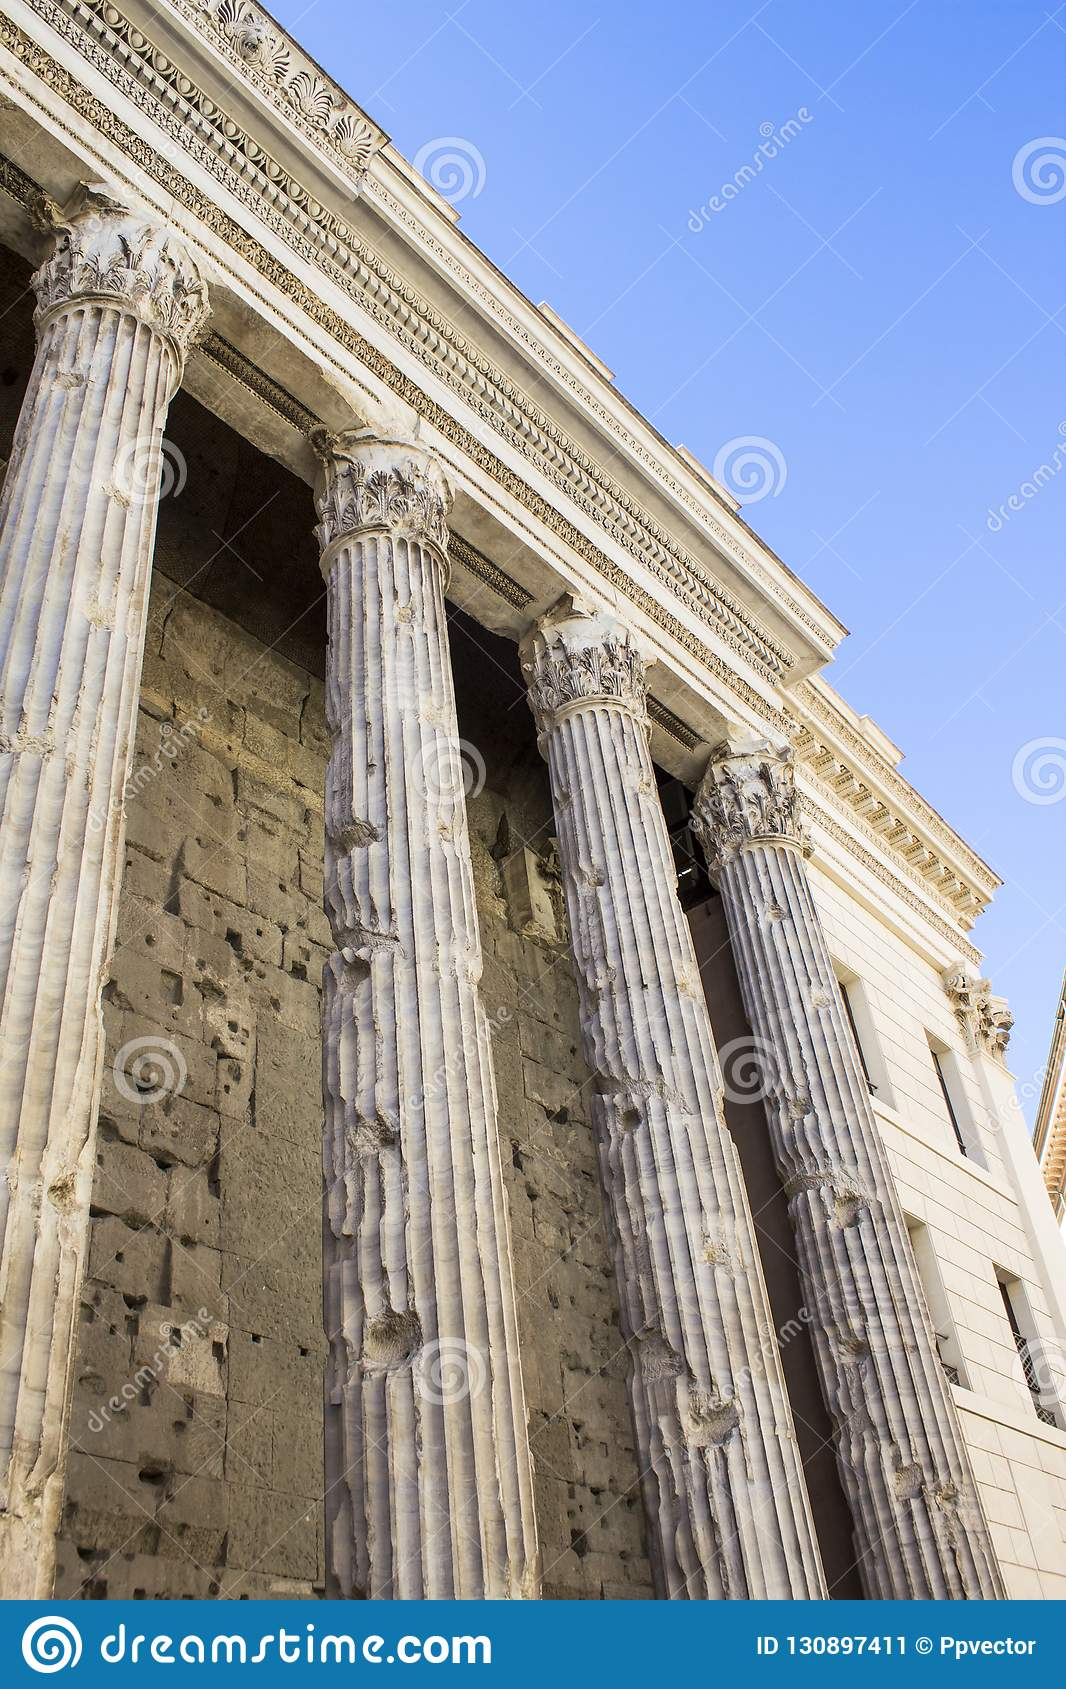 Antique Building With Columns Stock Image - Image of ...